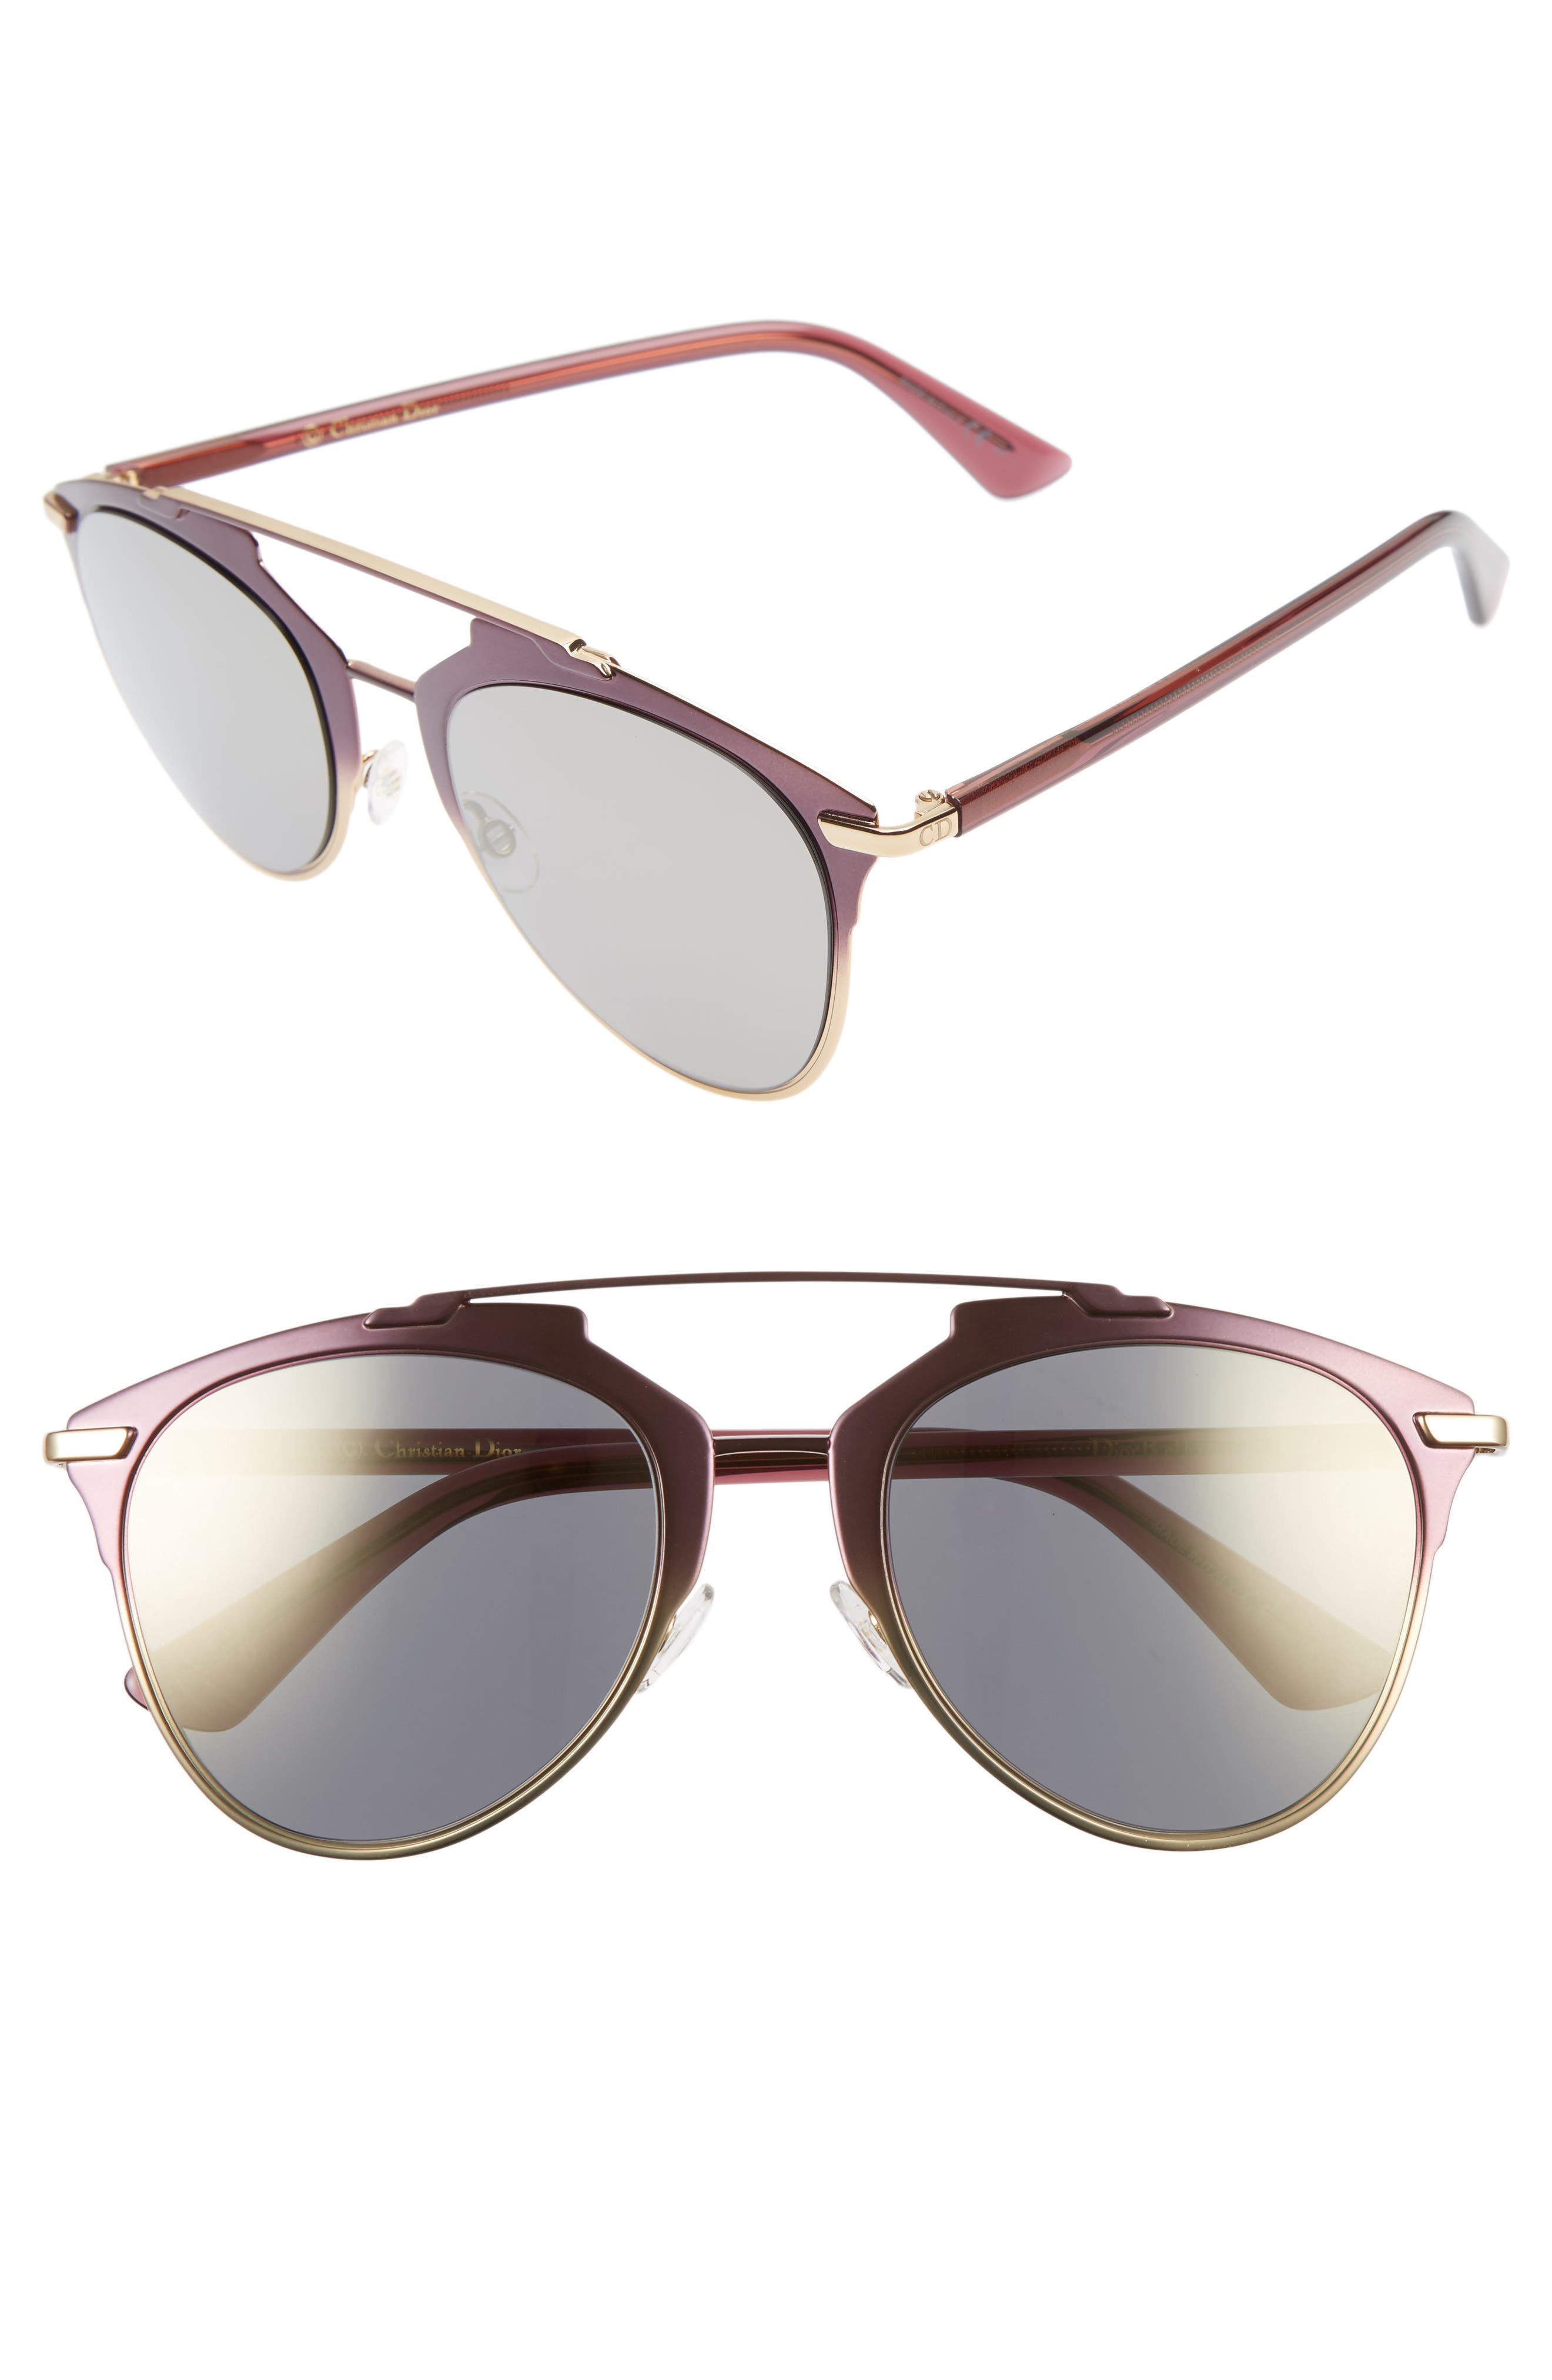 Alternate Image 1 Selected - Dior Reflected 52mm Brow Bar Sunglasses